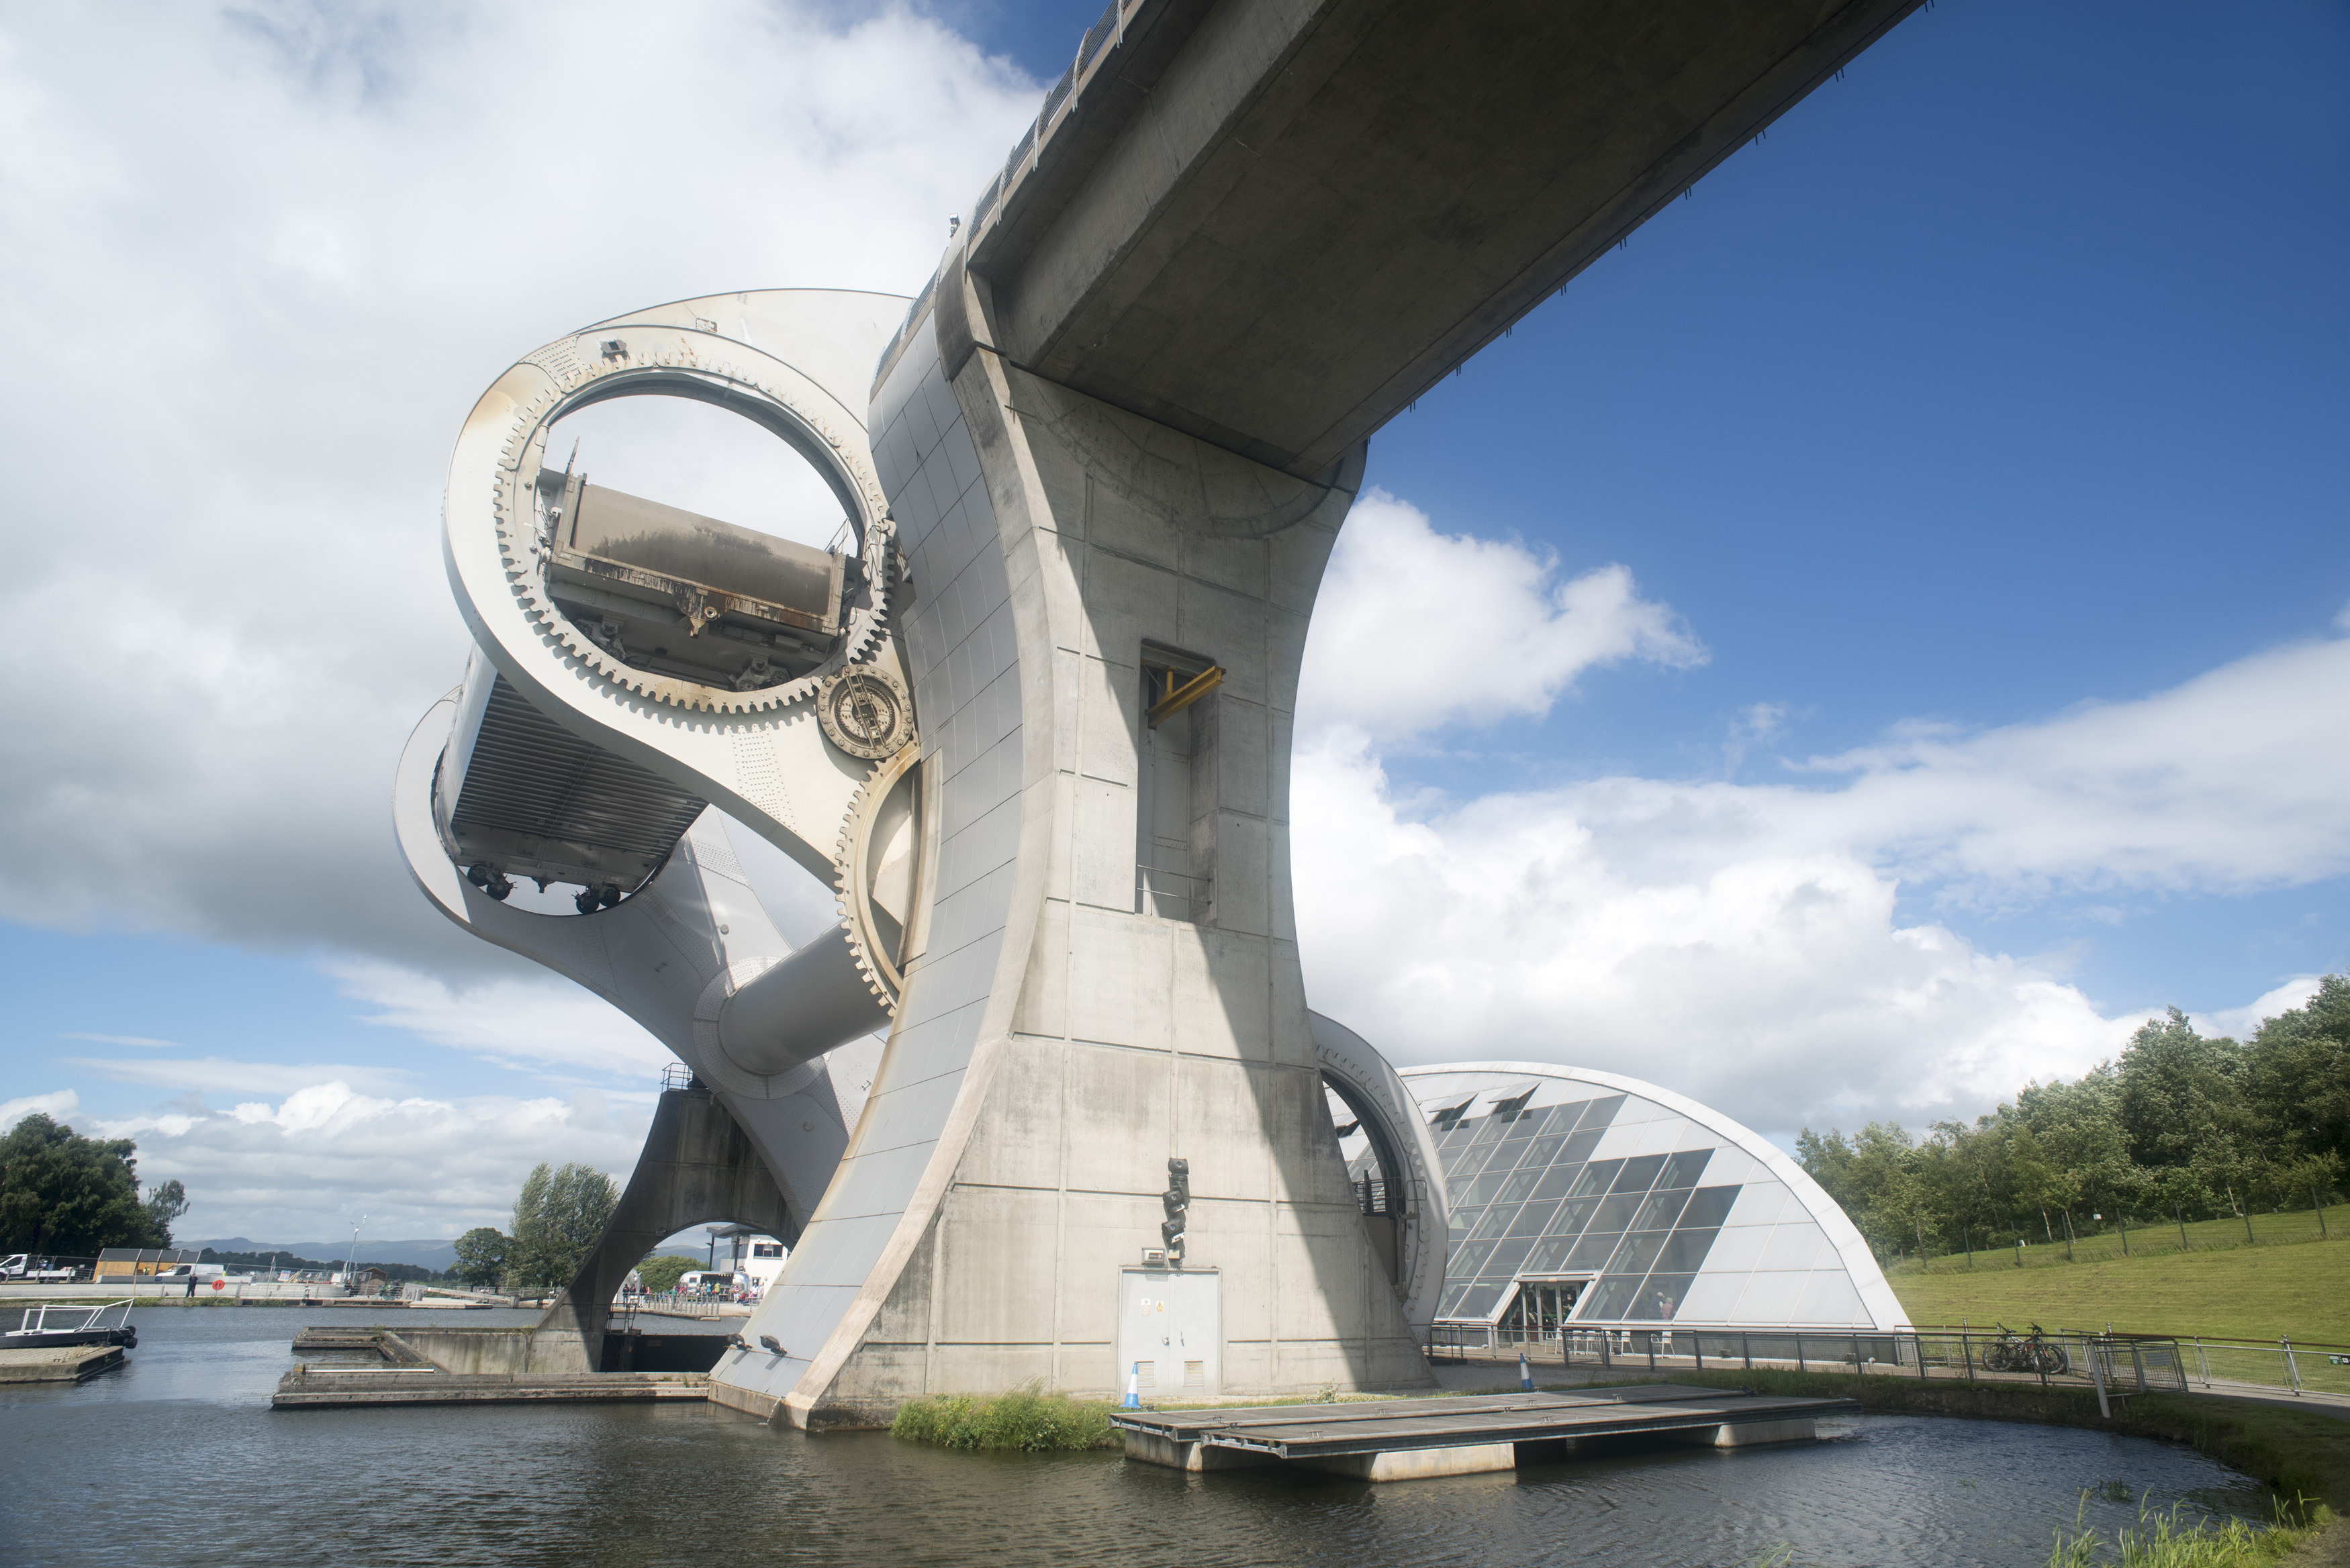 Low angle view of rotating boat lift in Scotland connecting two canals on a sunny day